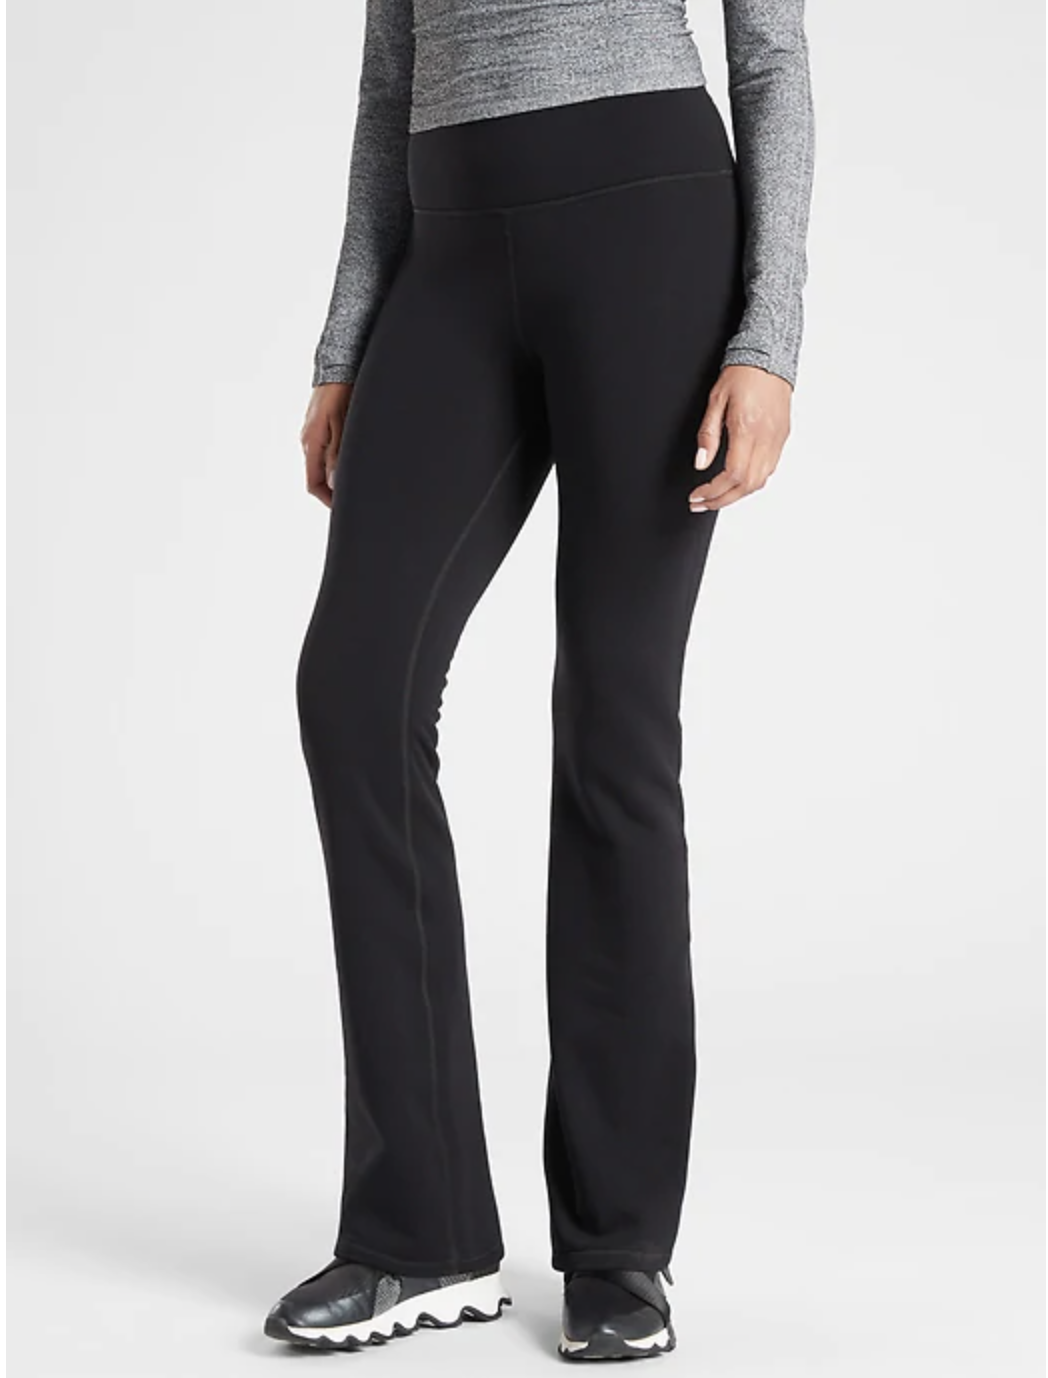 Polartec pants for cold weather